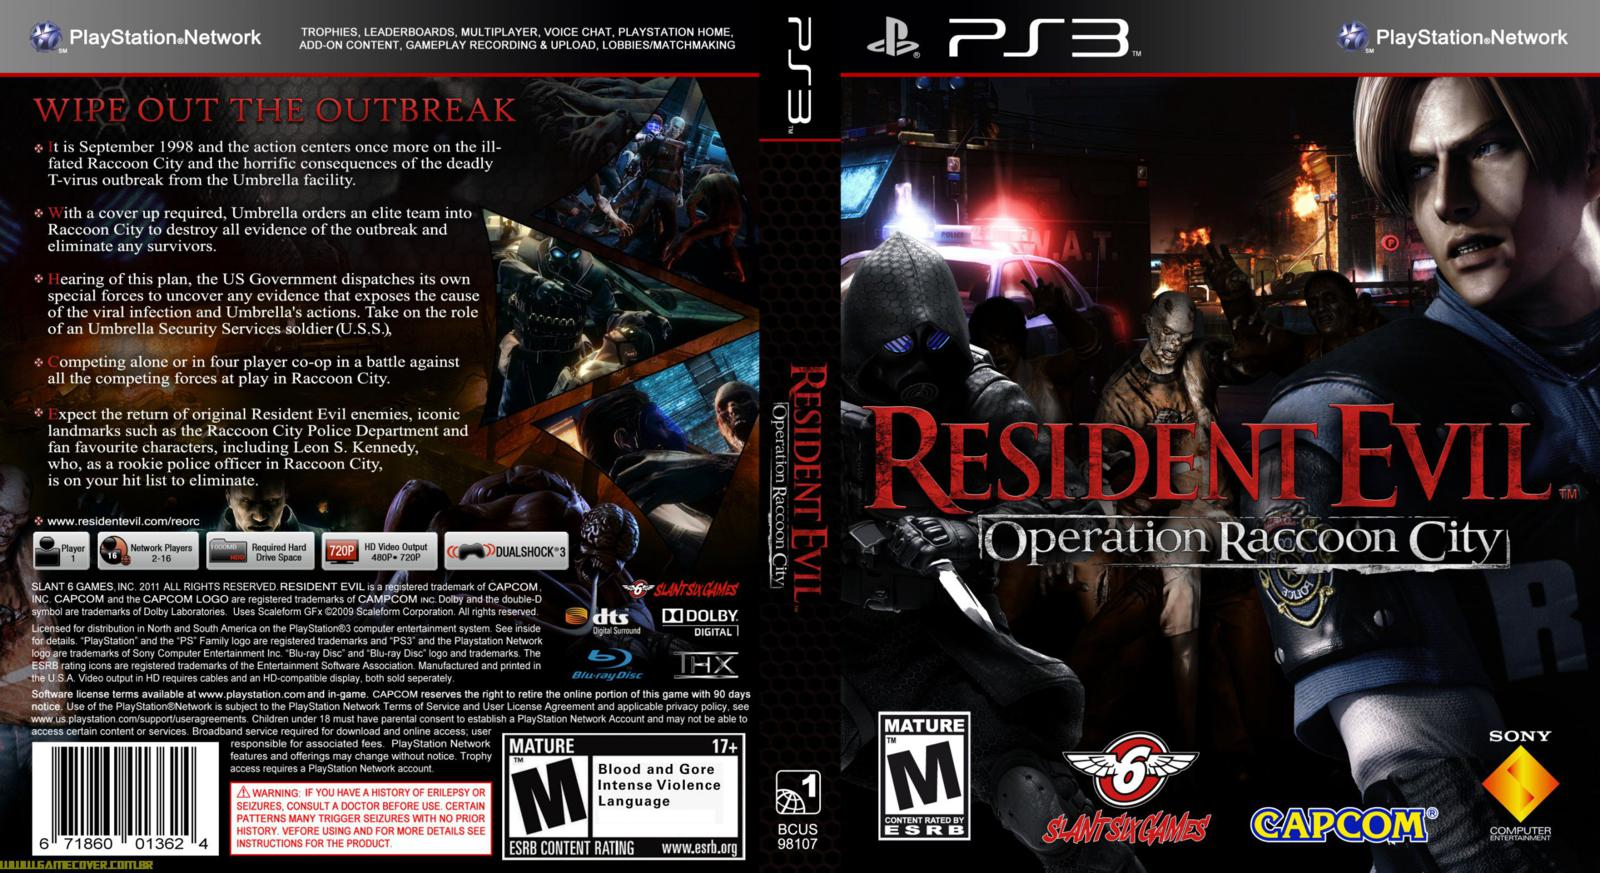 Resident Evil Operation Raccoon City Matchmaking